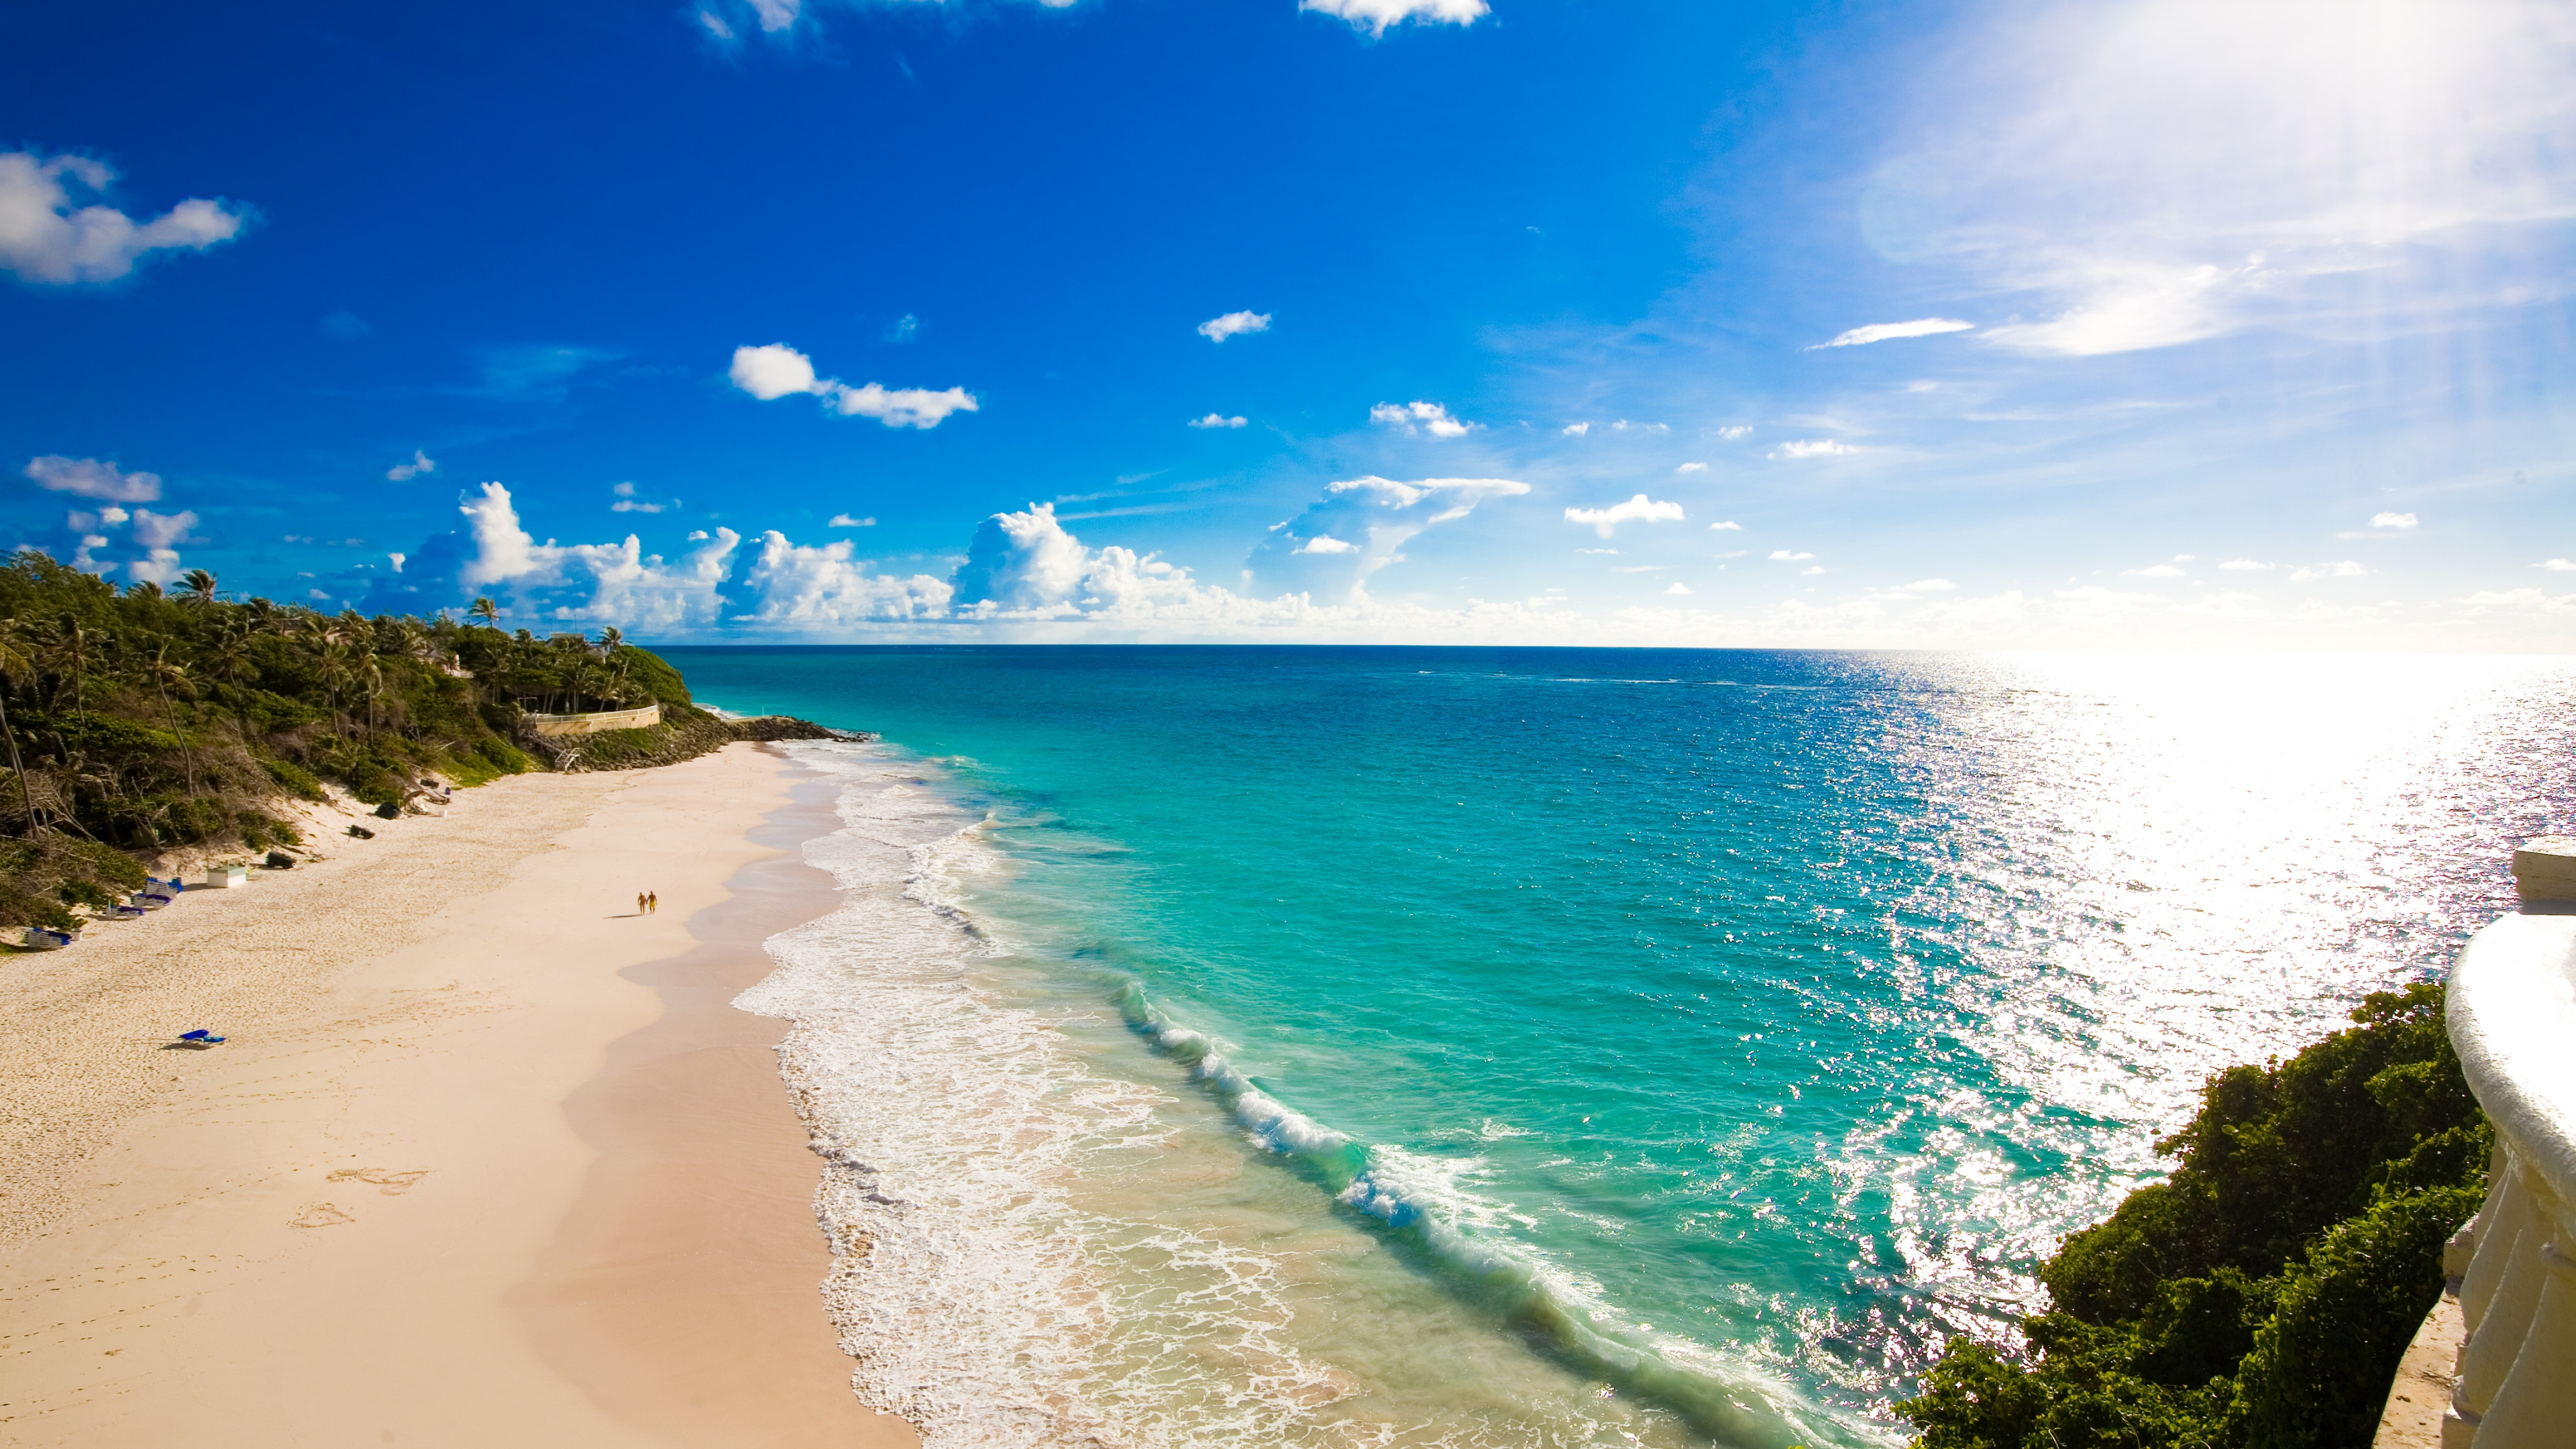 Best 46 Barbados Wallpaper on HipWallpaper Barbados Wallpaper 3840x2160